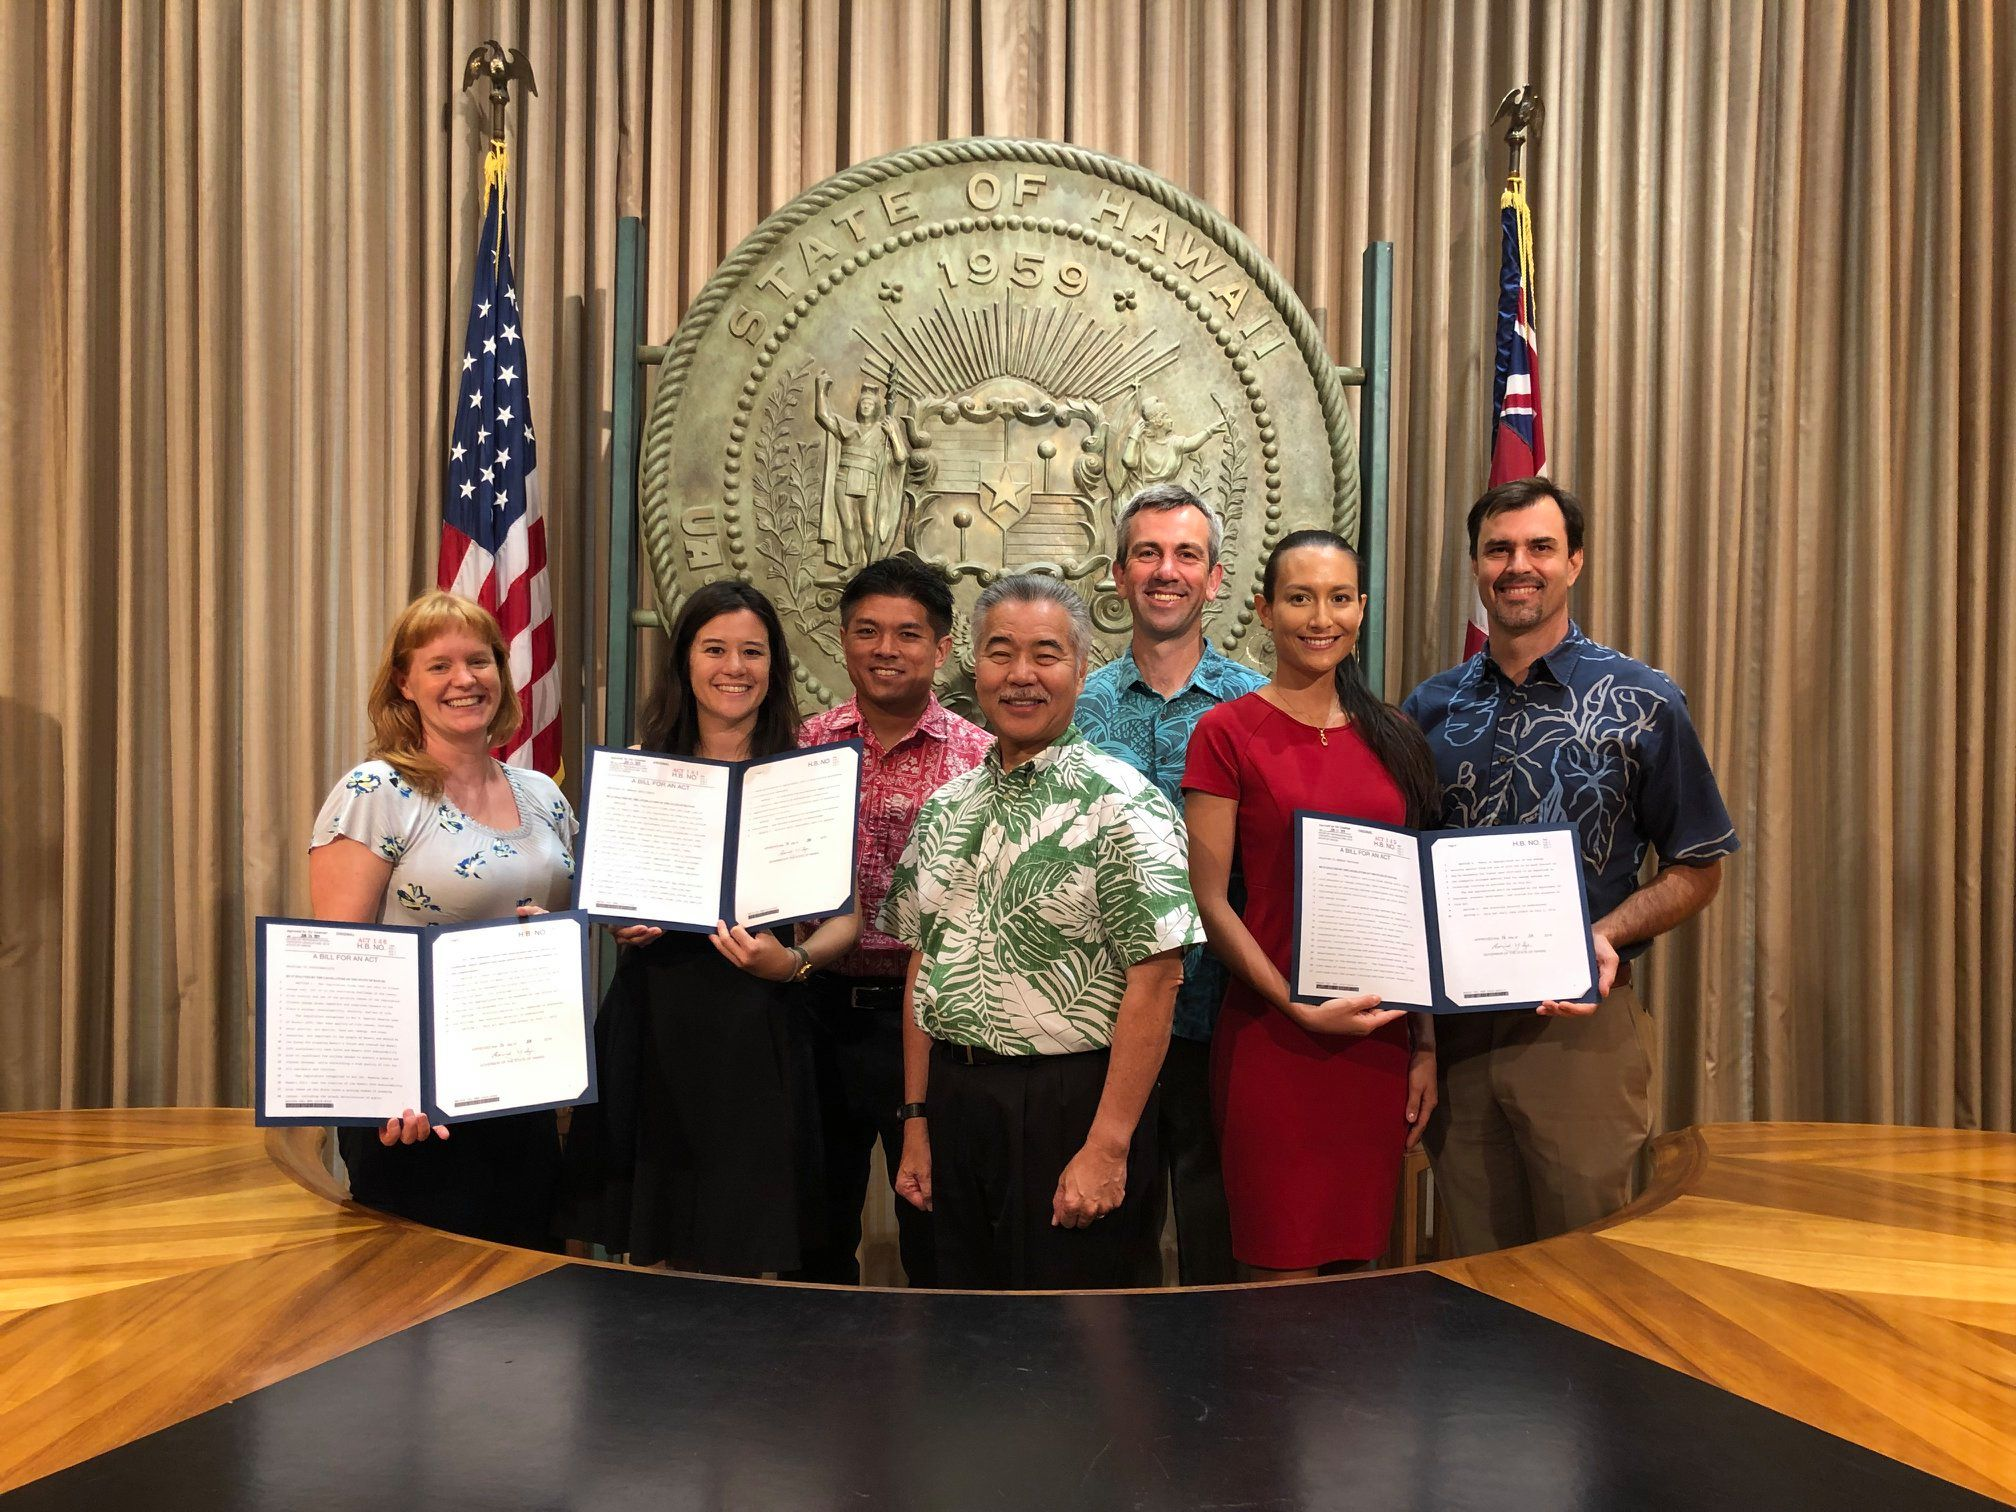 Jodi (pictured in red) joined Governor Ige and friends from Ulupono Initiative, Elemental Excelerator, and the Honolulu Office of Climate Change, Resiliency, and Sustainability for the 2019 environmental bills signing, where 7 bills were signed into law.